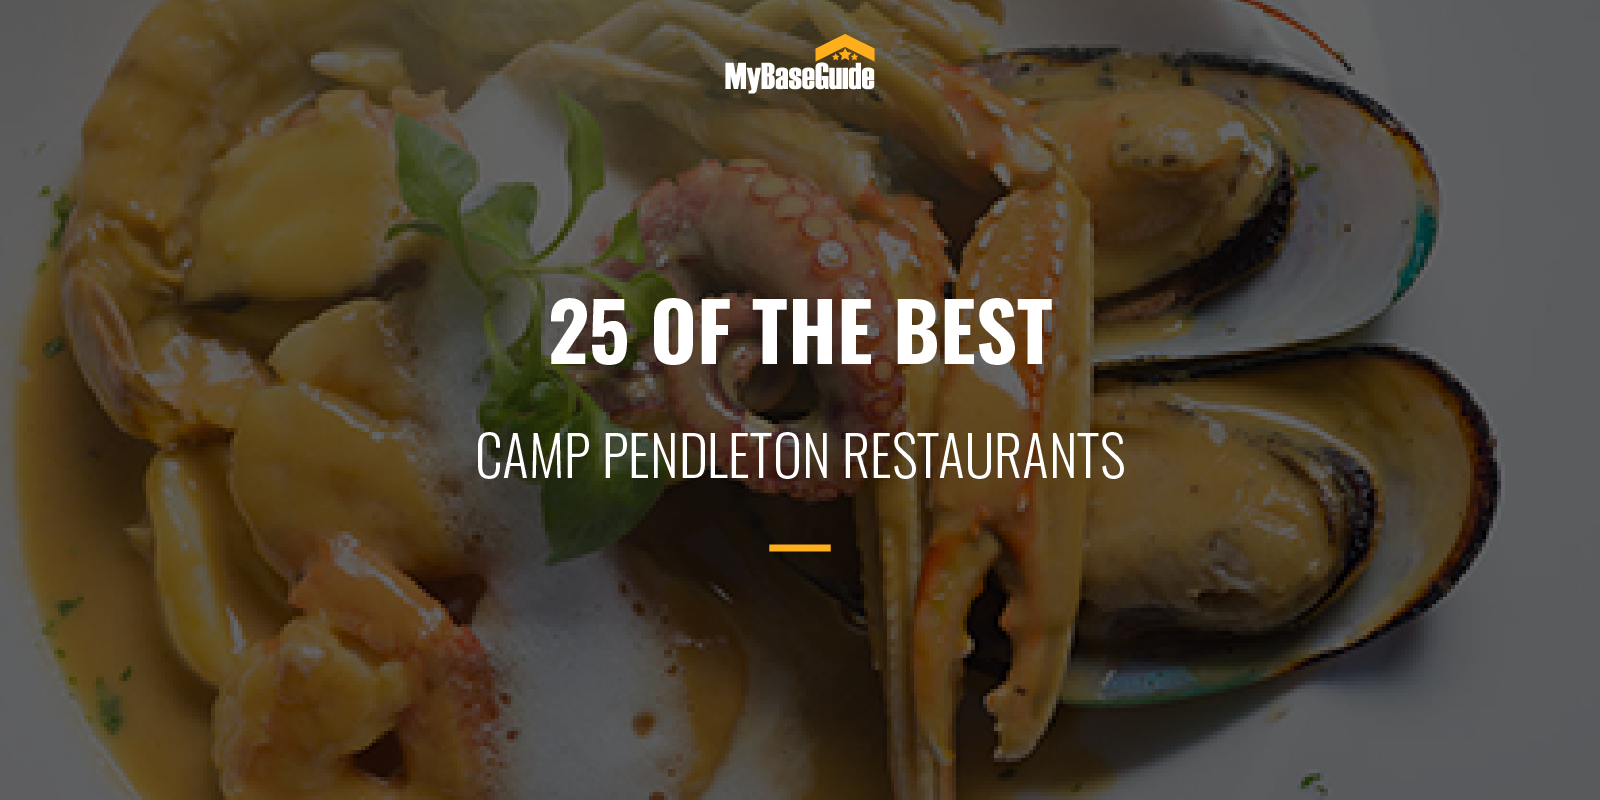 Best Camp Pendleton Restaurants